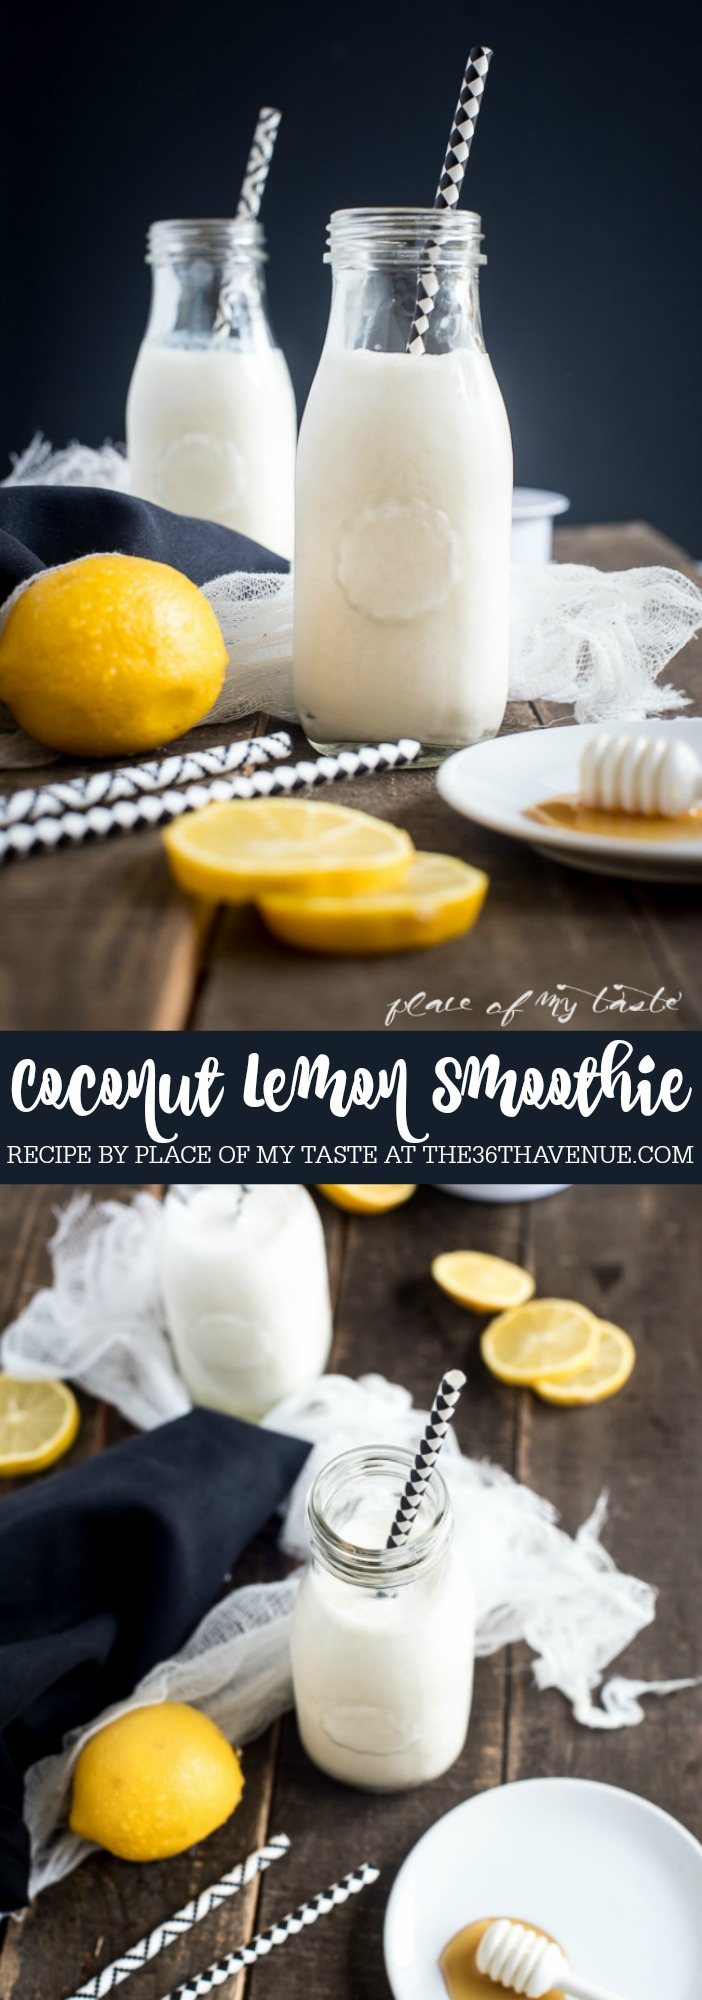 Coconut Lemon Smoothie at the36thavenue.com